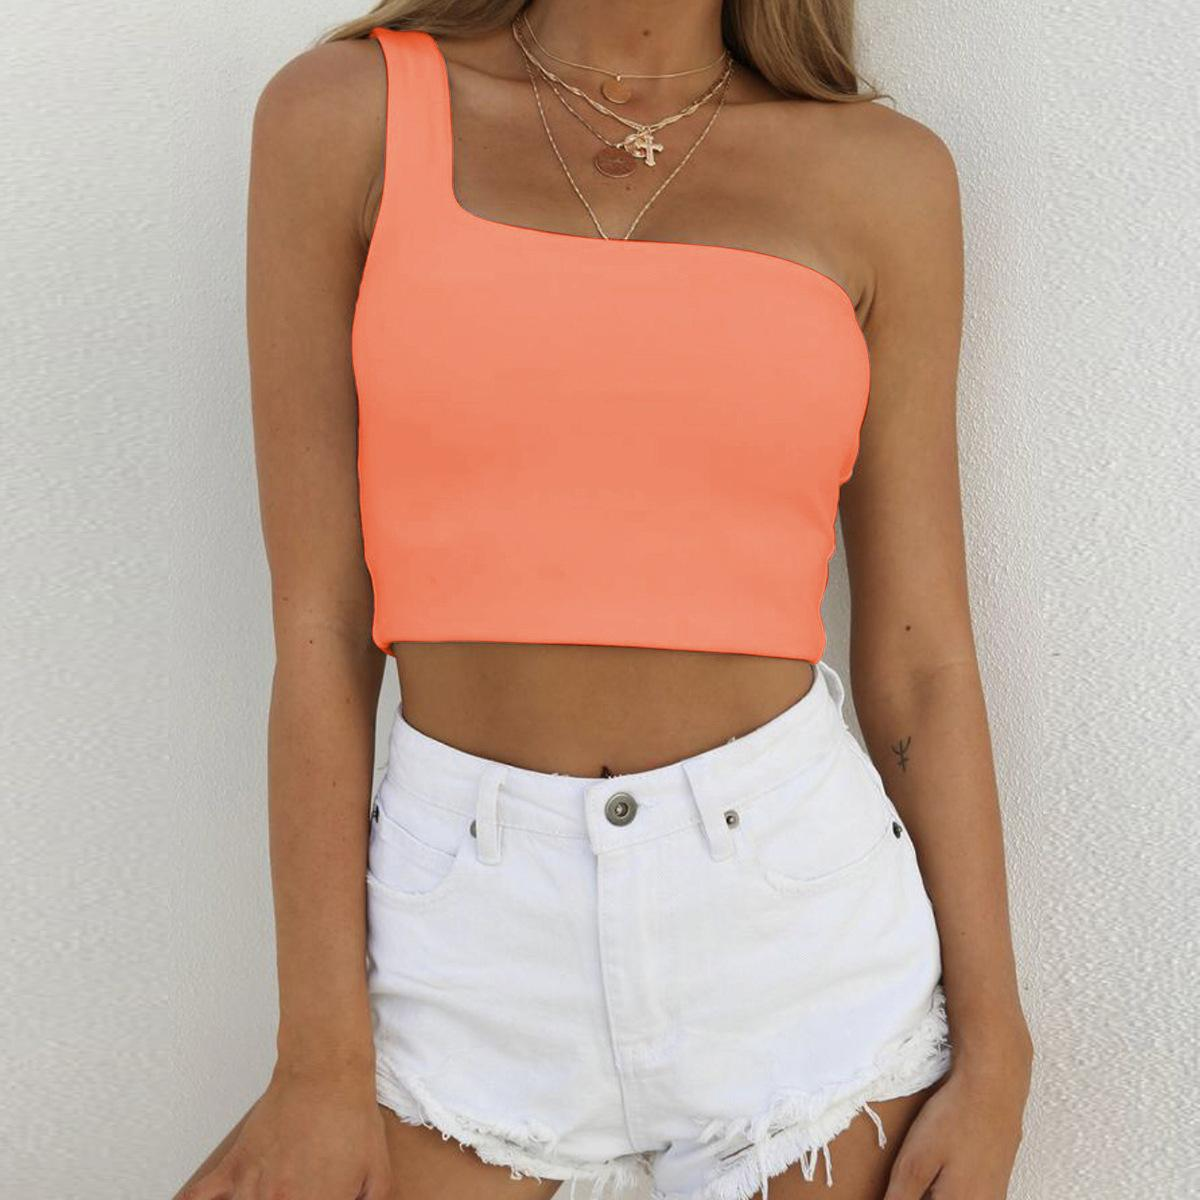 adc498138d06a Sexy One Shoulder Top Wome Bare Midriff Top Shirt Black White Solid Color  Women Clothes Drop Shipping Design Your Own T Shirts Womens Shirt From  Cndream